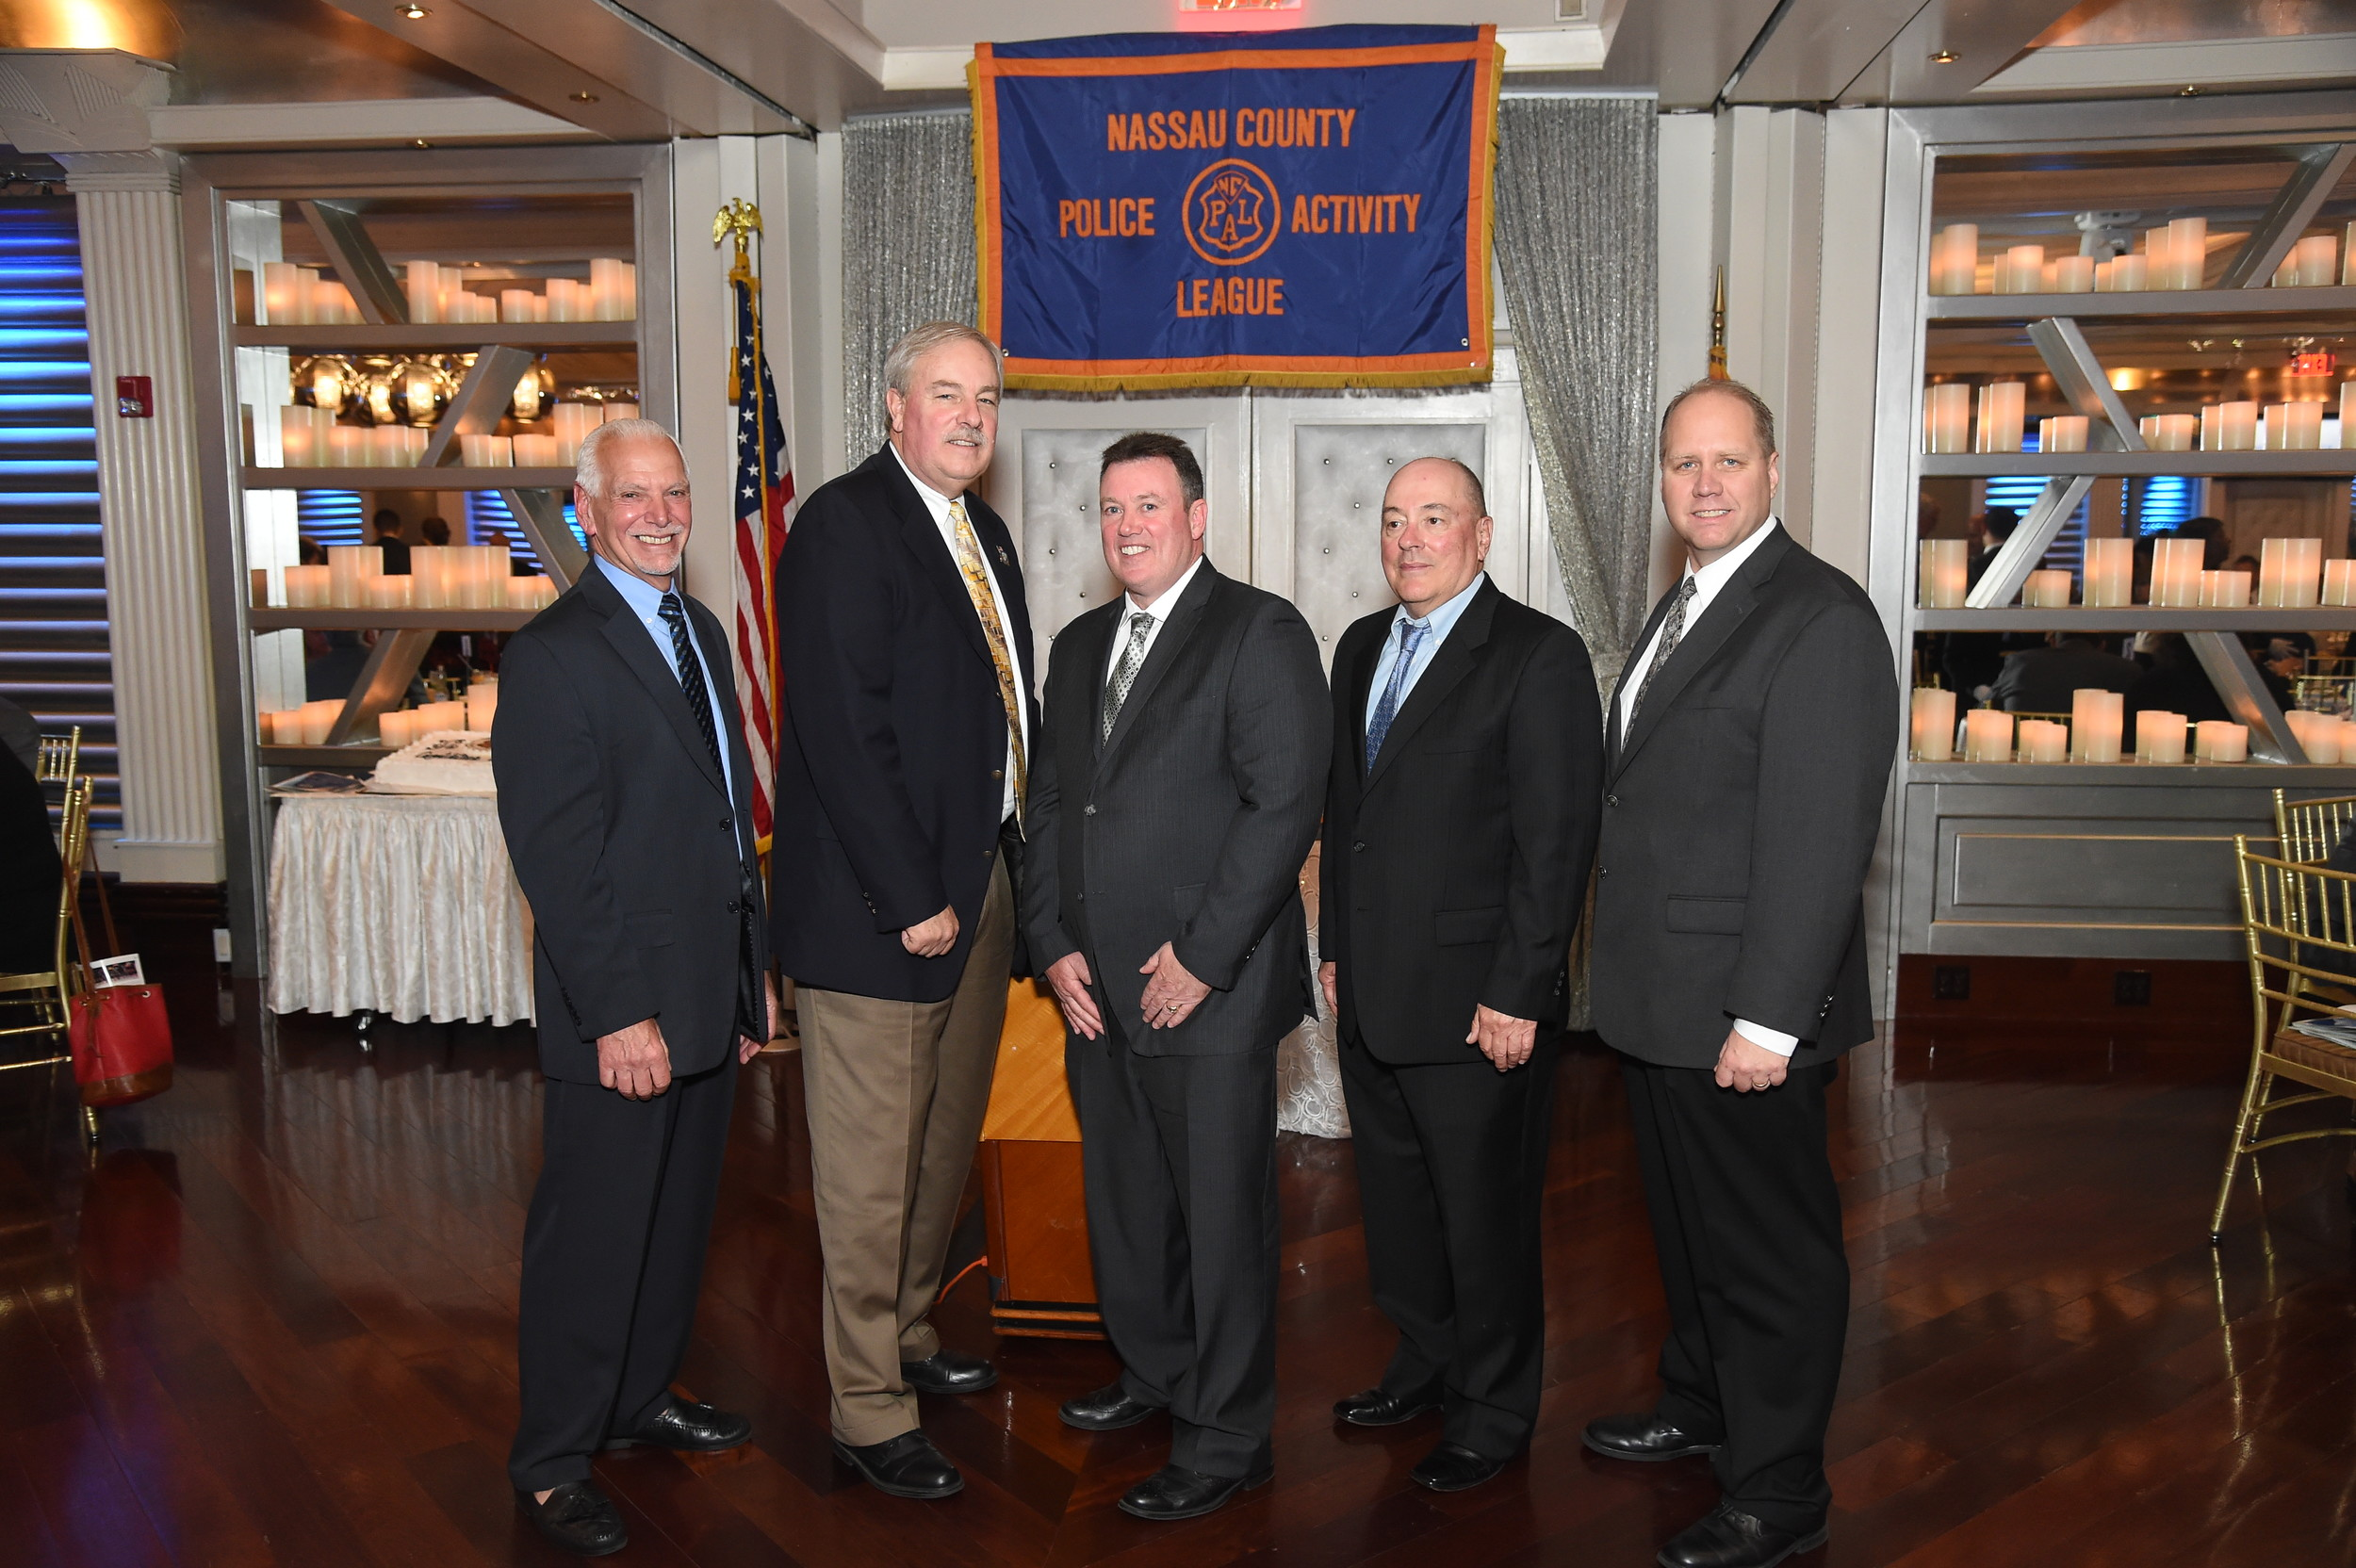 NCPAL President Frank DiVittorio, left, and Commanding Officers Sgt. Doug Kenah and Sgt. Rob Kiesel honored Chris Quinn, of the Wantagh-Seaford PAL, and Robert Pope, of the PAL Special Needs Unit, for their dedication to the organization.